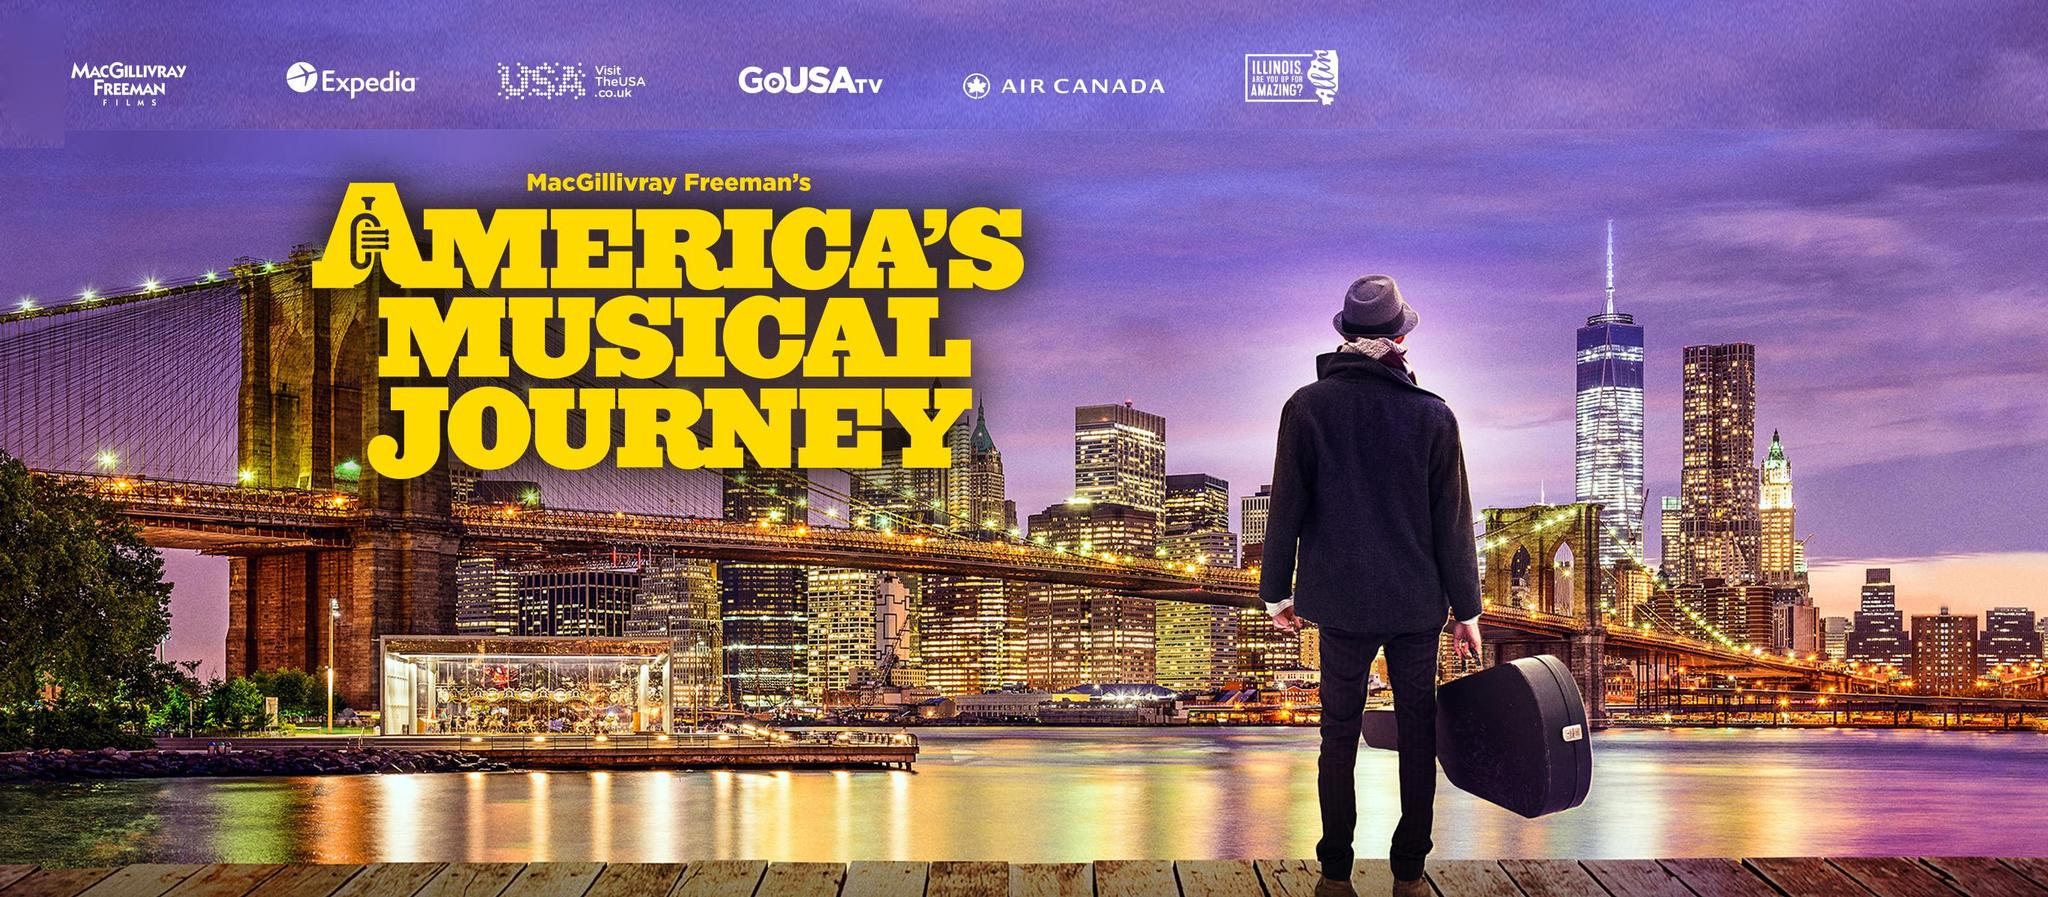 PROMOTION: Win tickets to see America's Musical Journey   Movies   Features